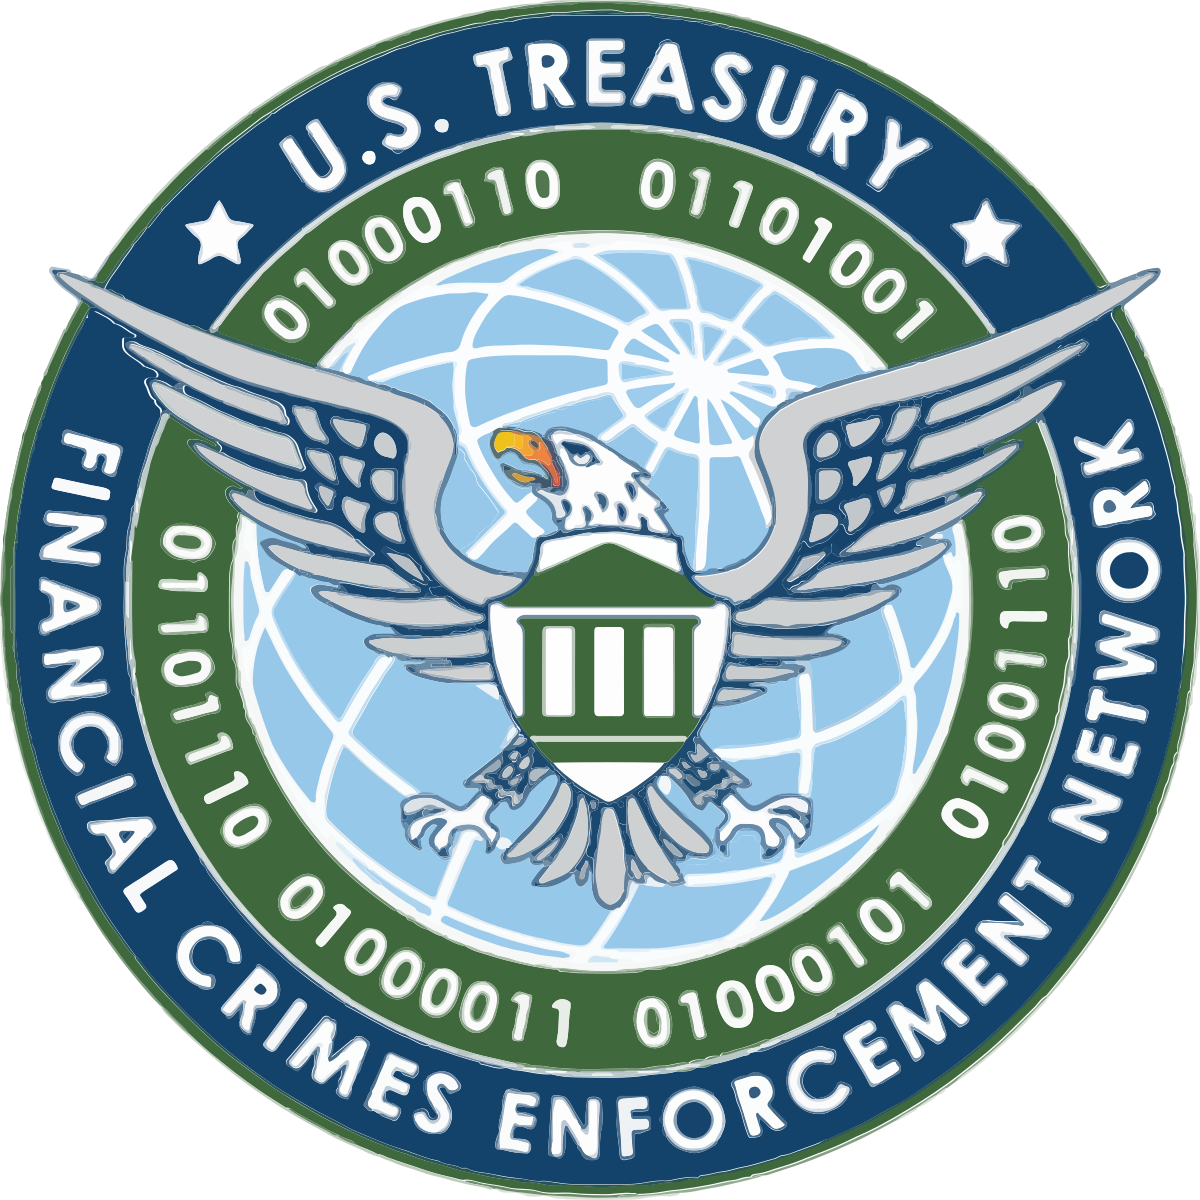 FinCEN logo (source: Wikipedia)